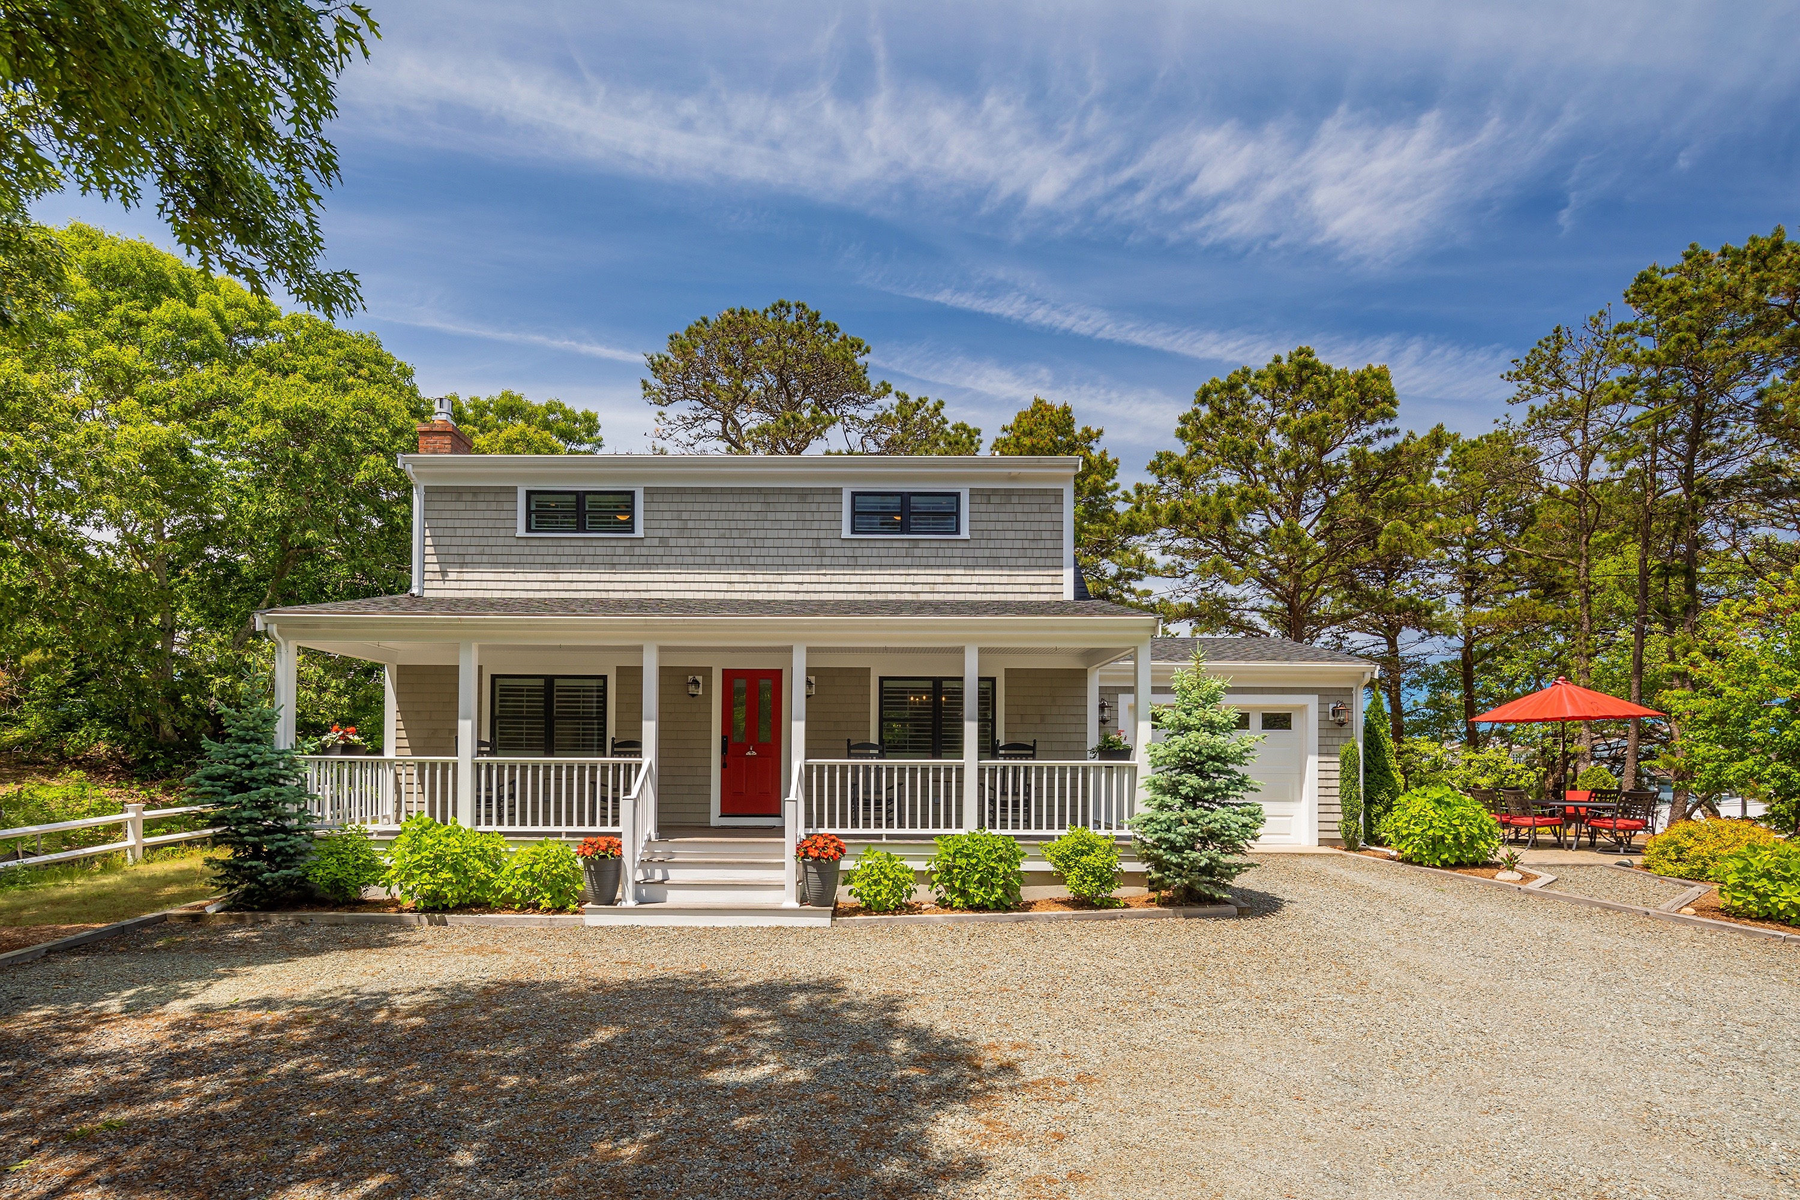 Single Family Homes for Sale at Feel the breeze on the covered front porch 32 Ship's Way Provincetown, Massachusetts 02657 United States